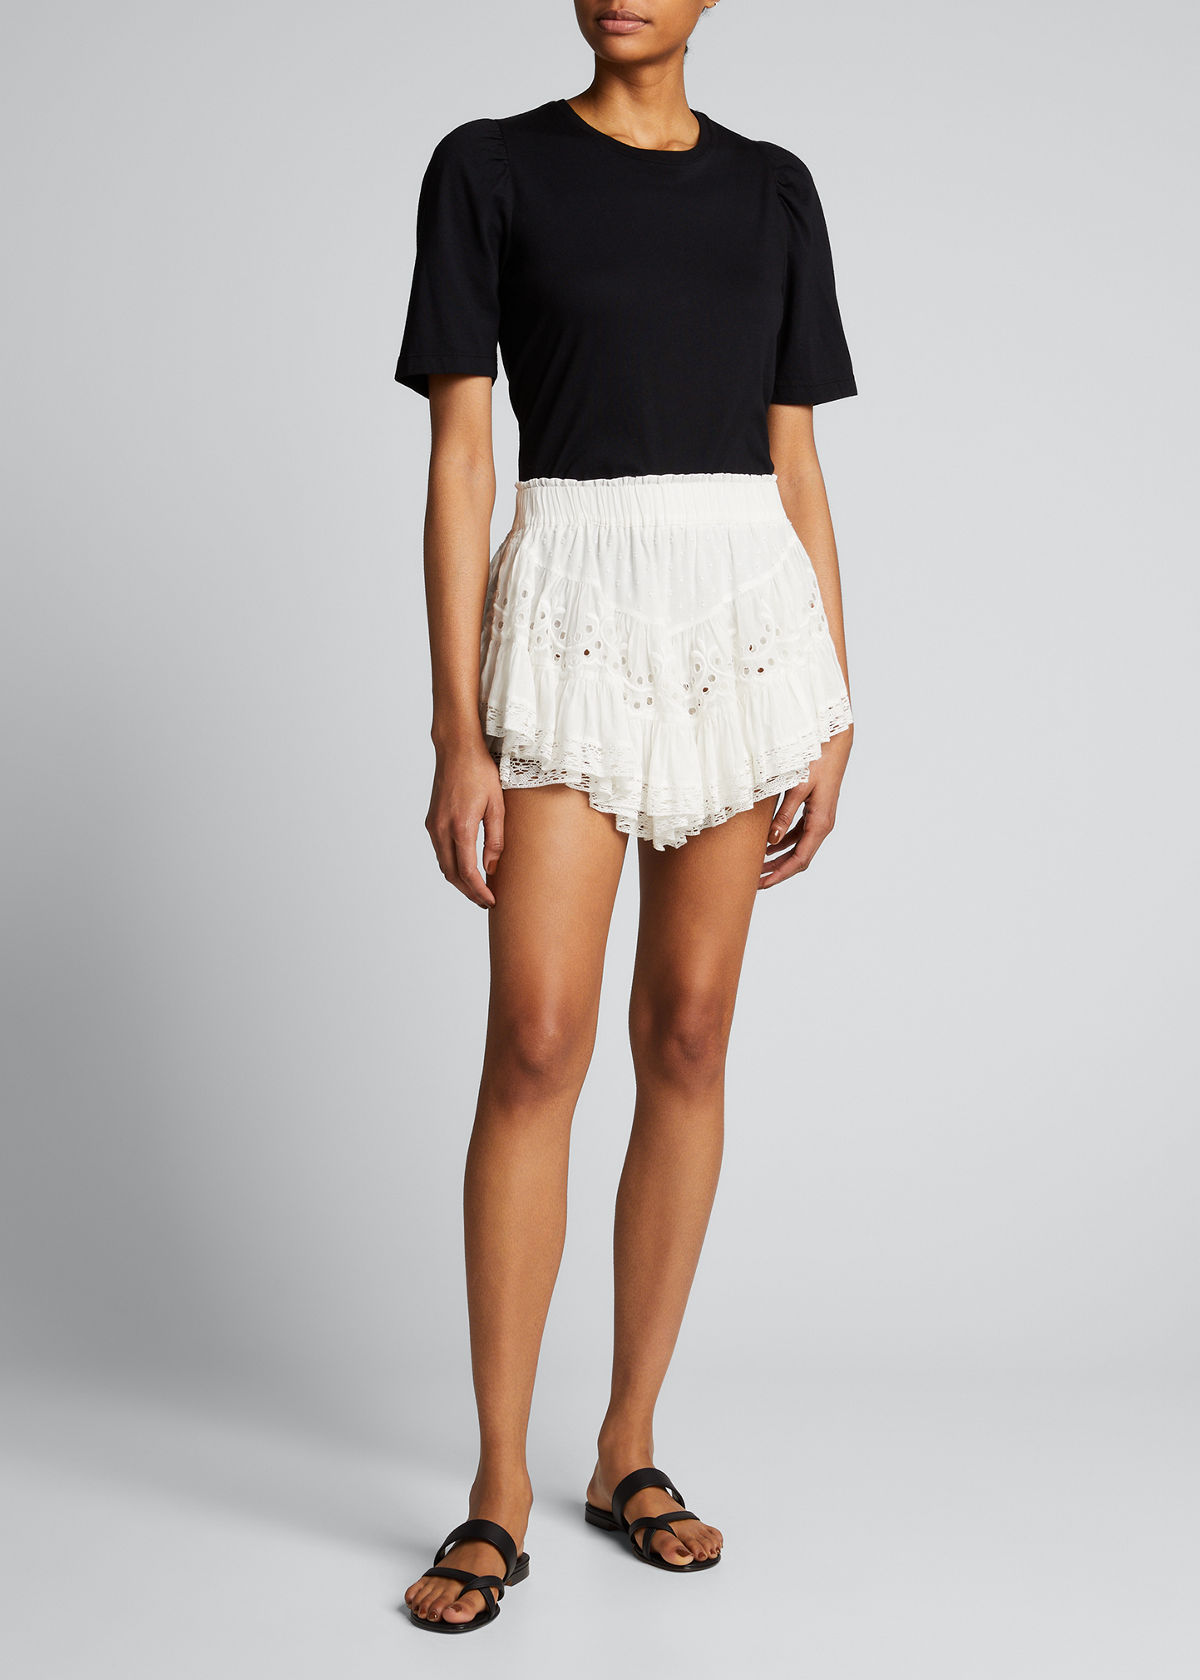 Loveshackfancy BRIELLA EMBROIDERED LACE MINI SKIRT